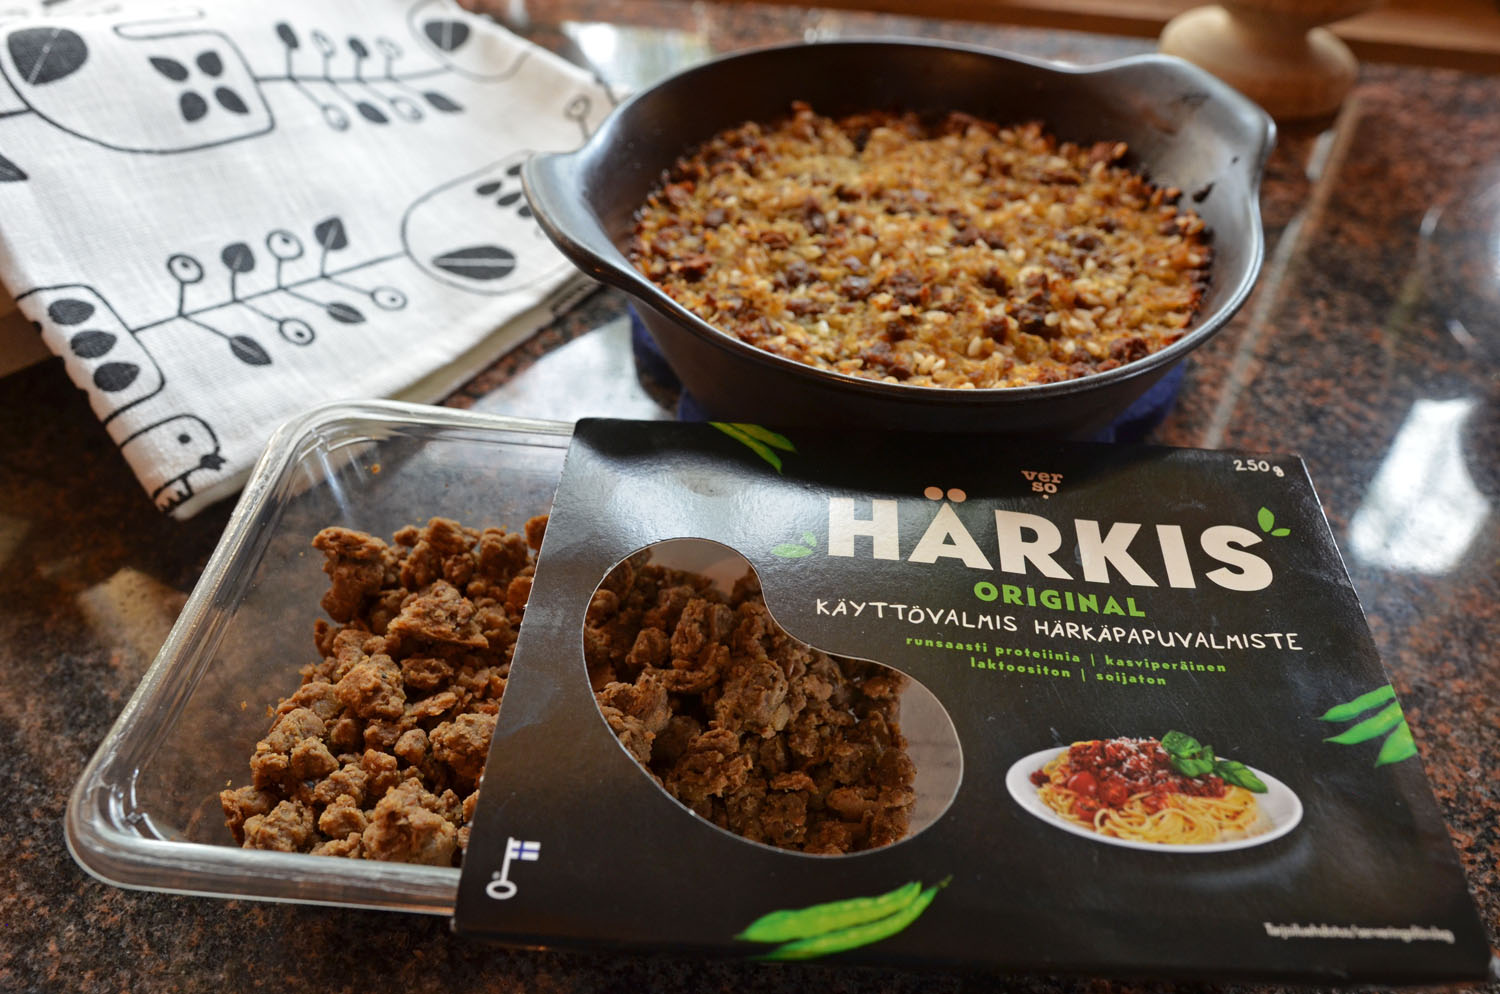 You can use Härkis, a vegan meat substitute, for many dishes instead of minced meat